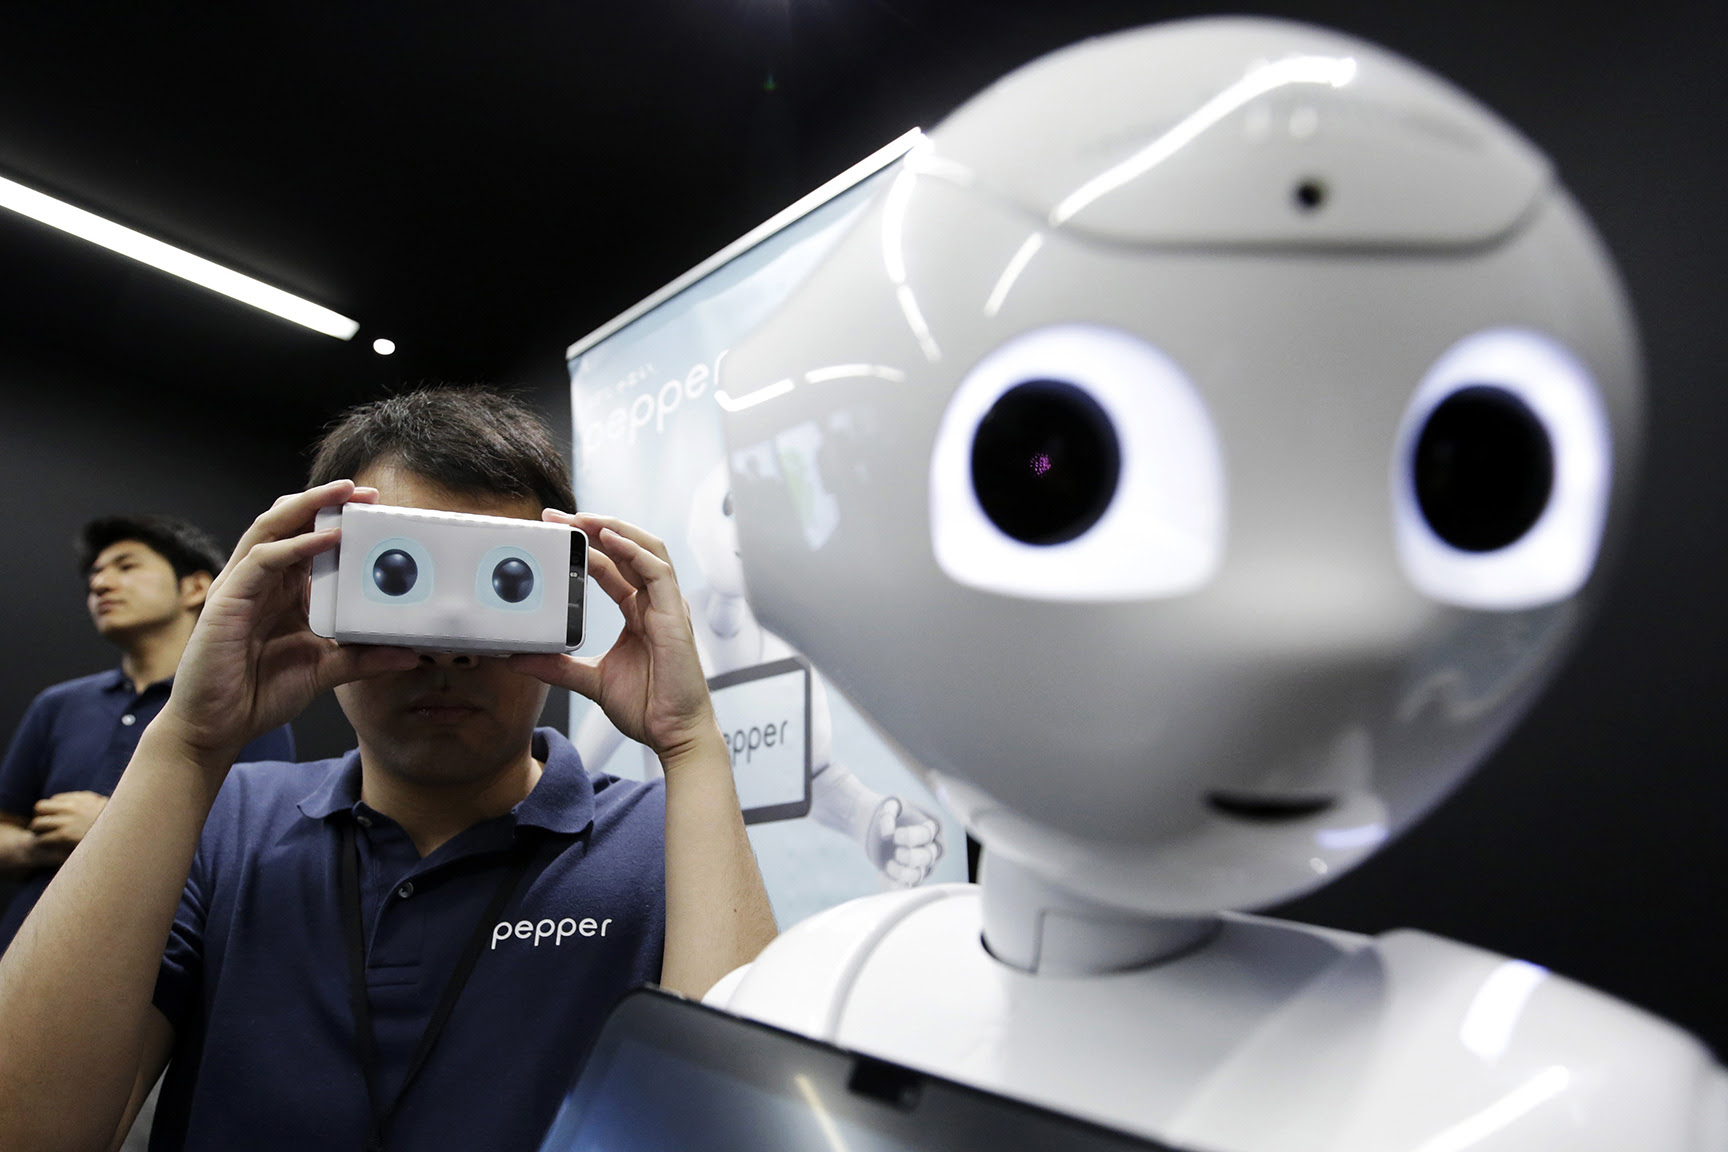 Softbank Robotics Event As Company Allows Android App Development For Pepper